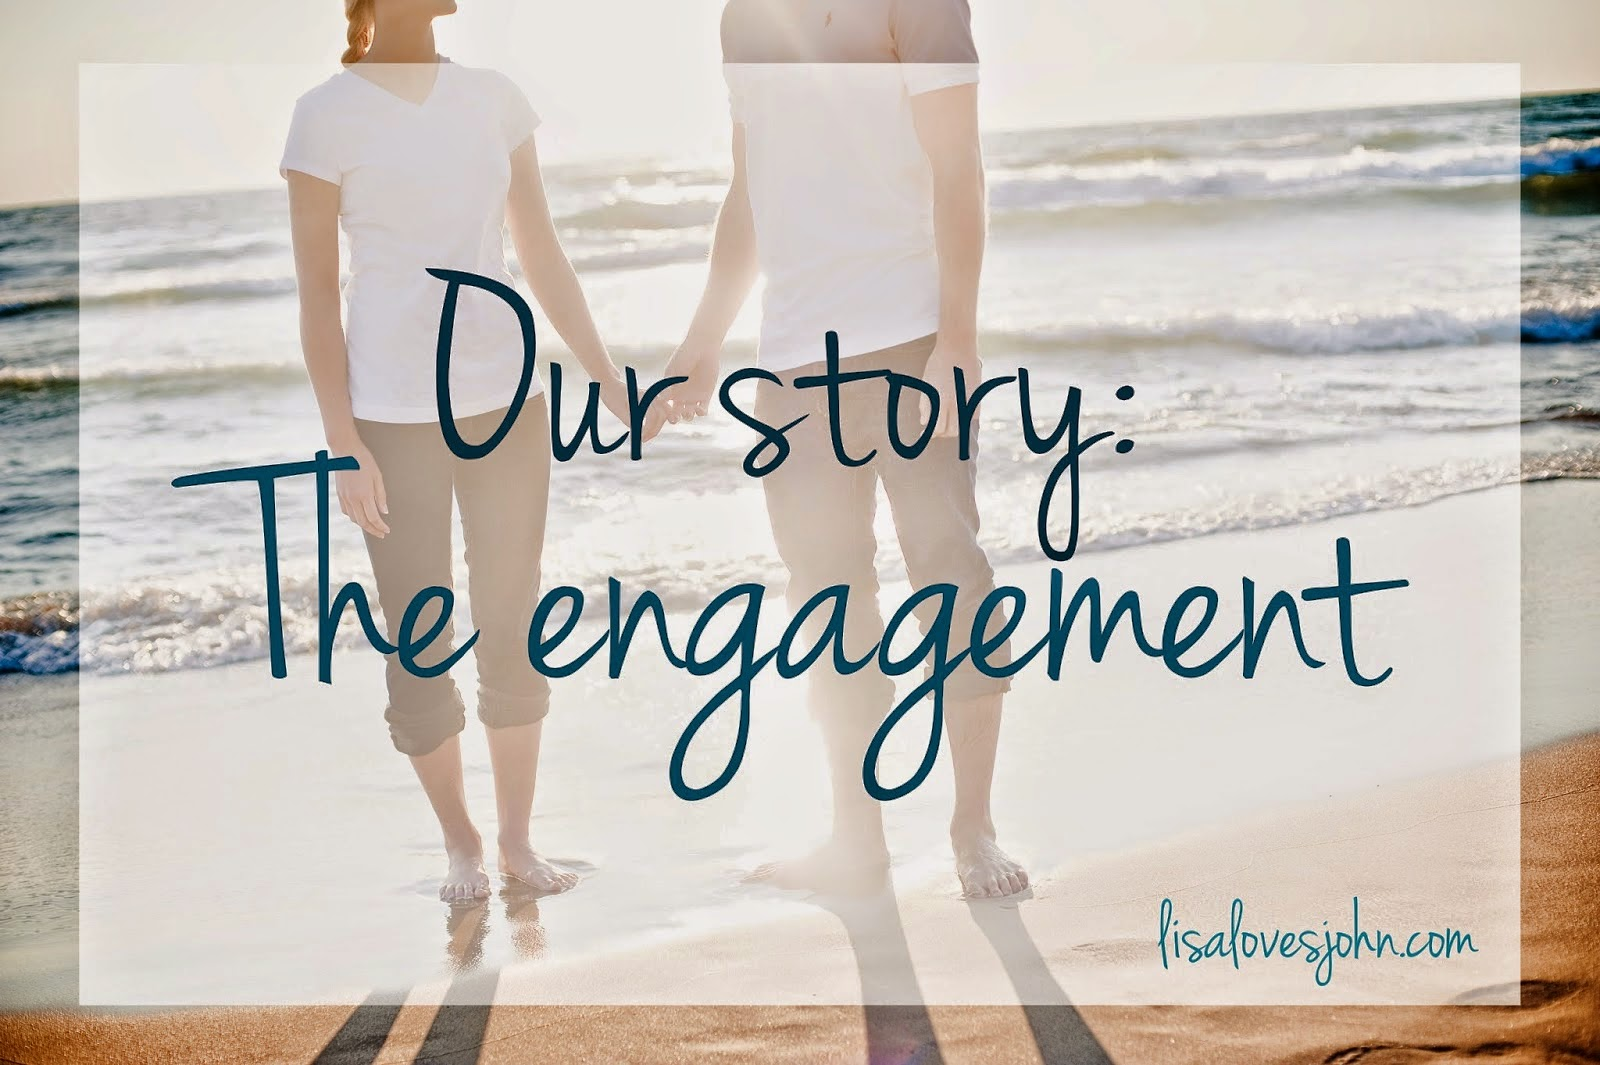 http://www.lisalovesjohn.com/2014/06/our-story-engagement.html